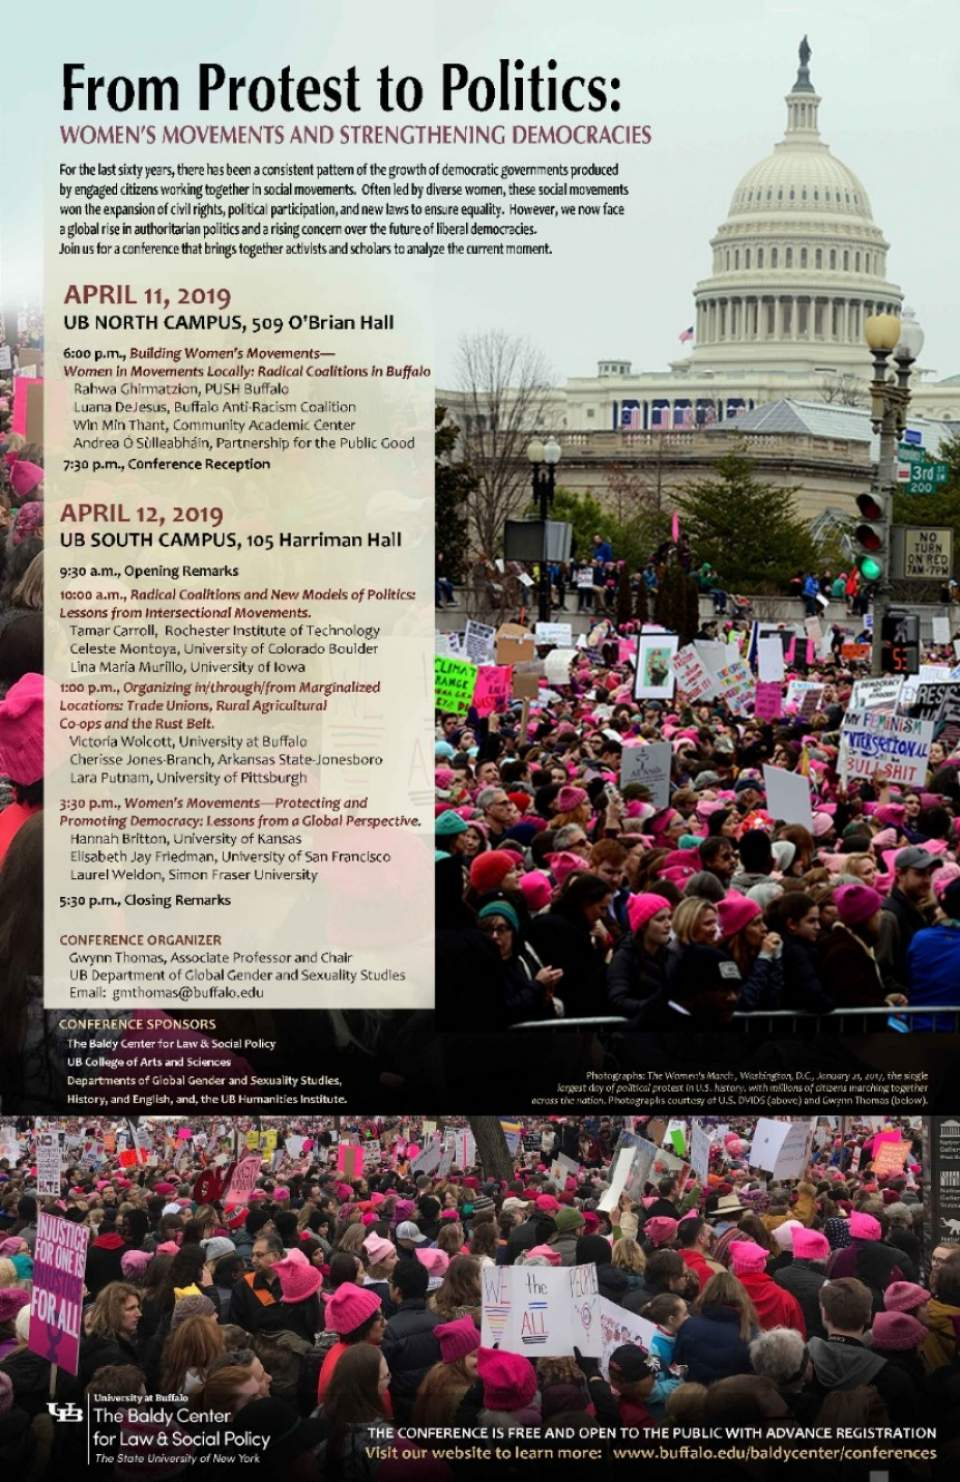 From Protest to Politics: Women's Movements and Strengthening Democracies